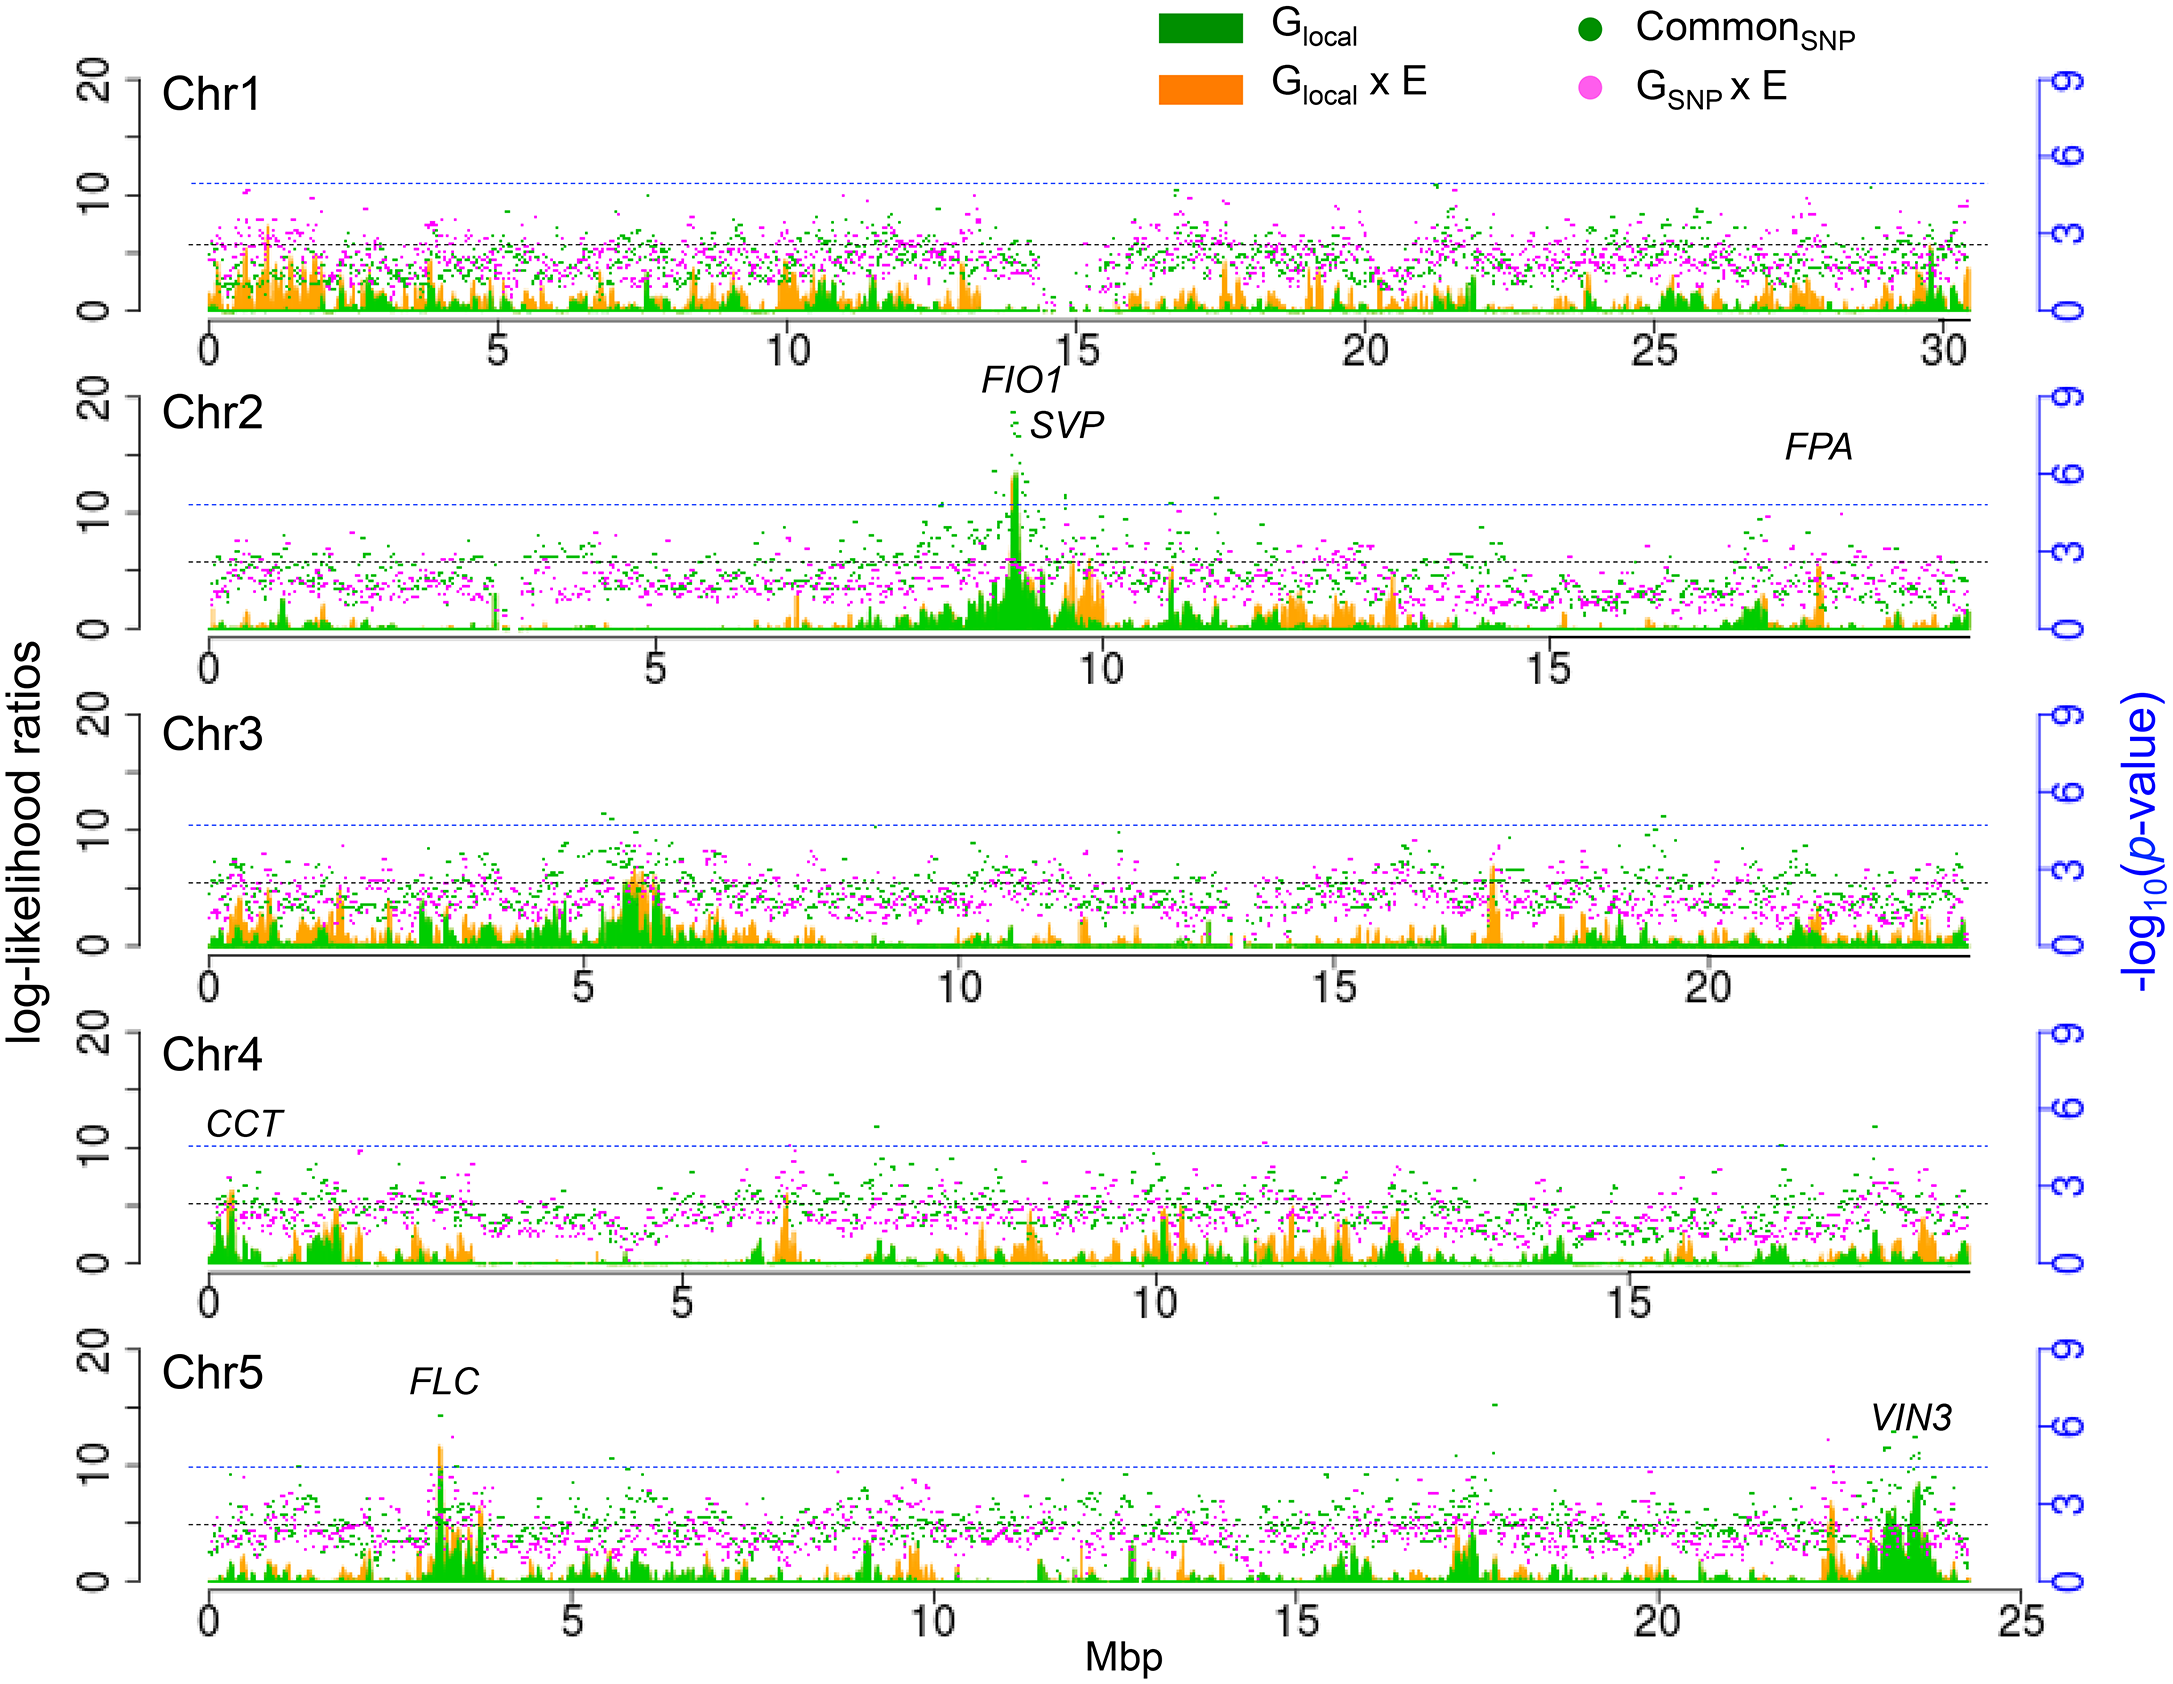 Genome-wide G and G x E effects for SNPs and well as local variance components.